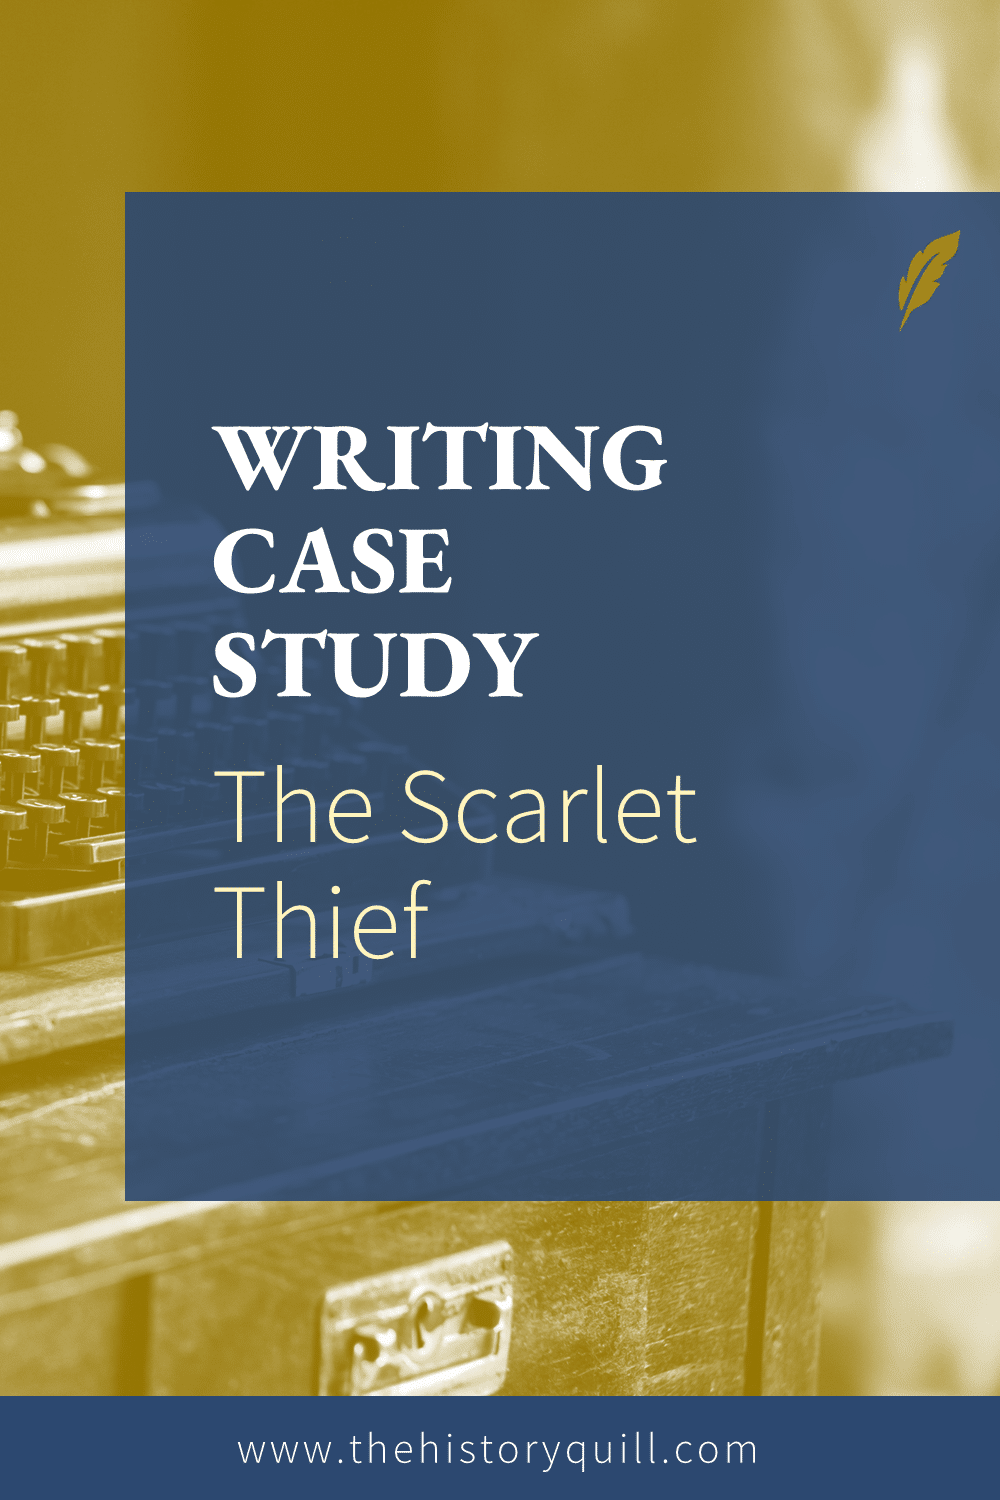 From The History Quill blog, a historical fiction case study for The Scarlet Thief.